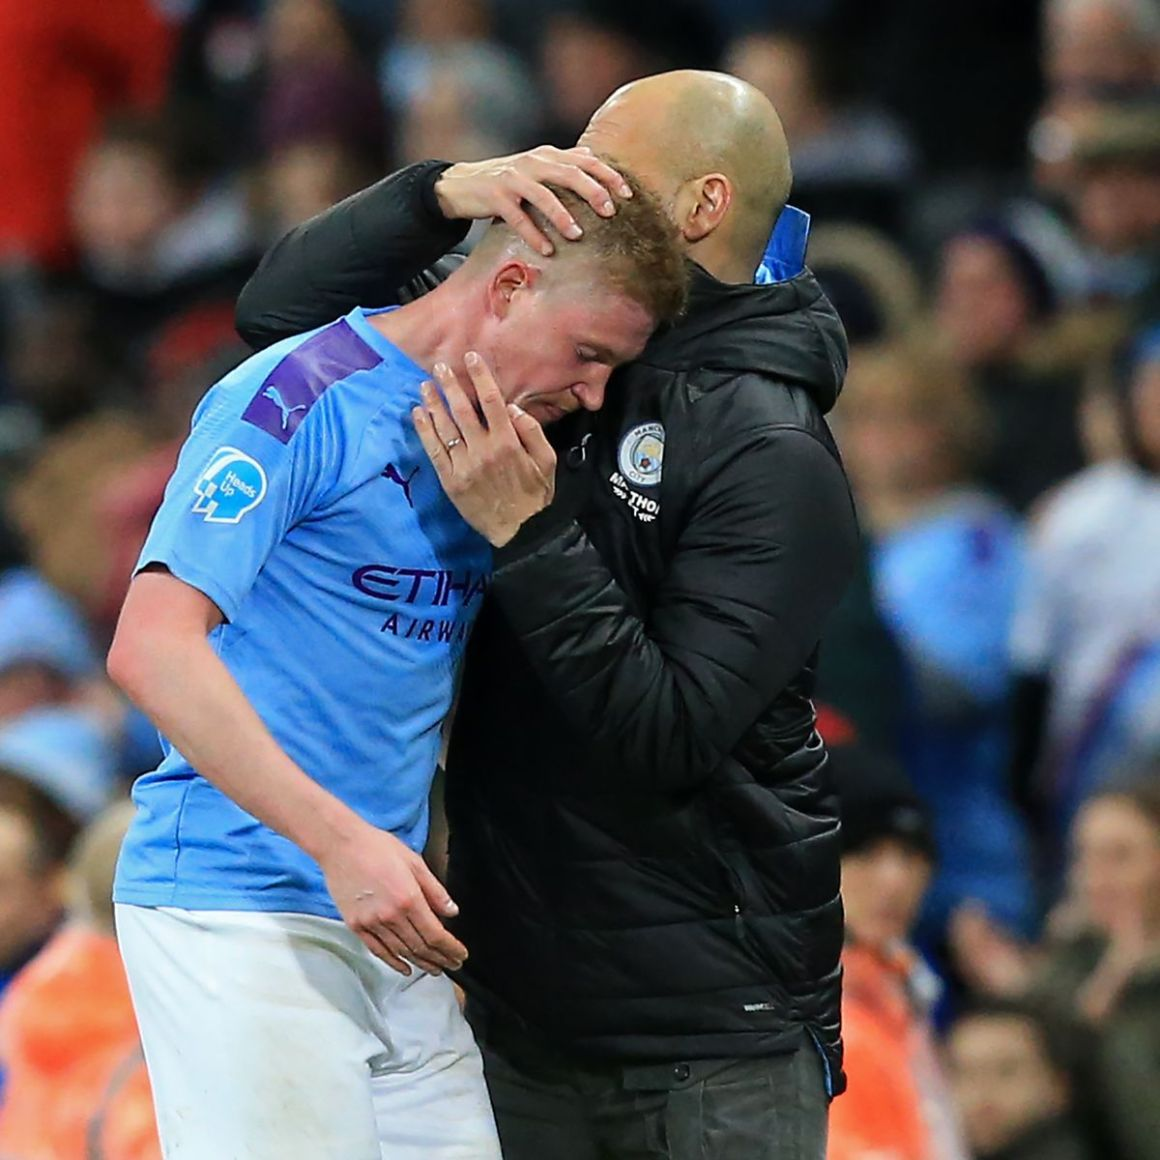 Why Kevin de Bruyne avoids close relationship with Man City boss Pep Guardiola in training - Manchester Evening News